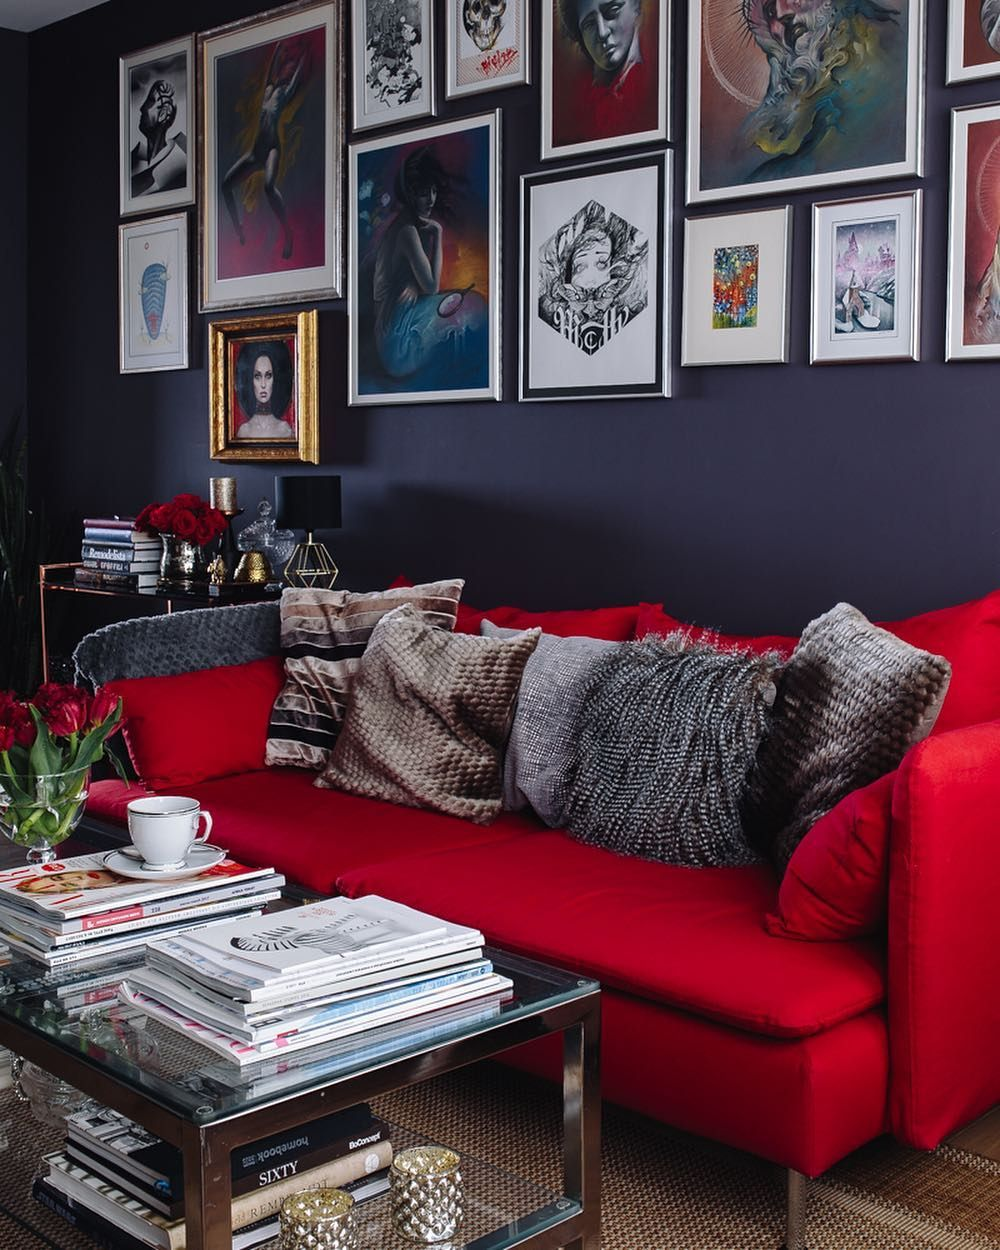 red sofa  Red couch living room, Red living room decor, Red sofa